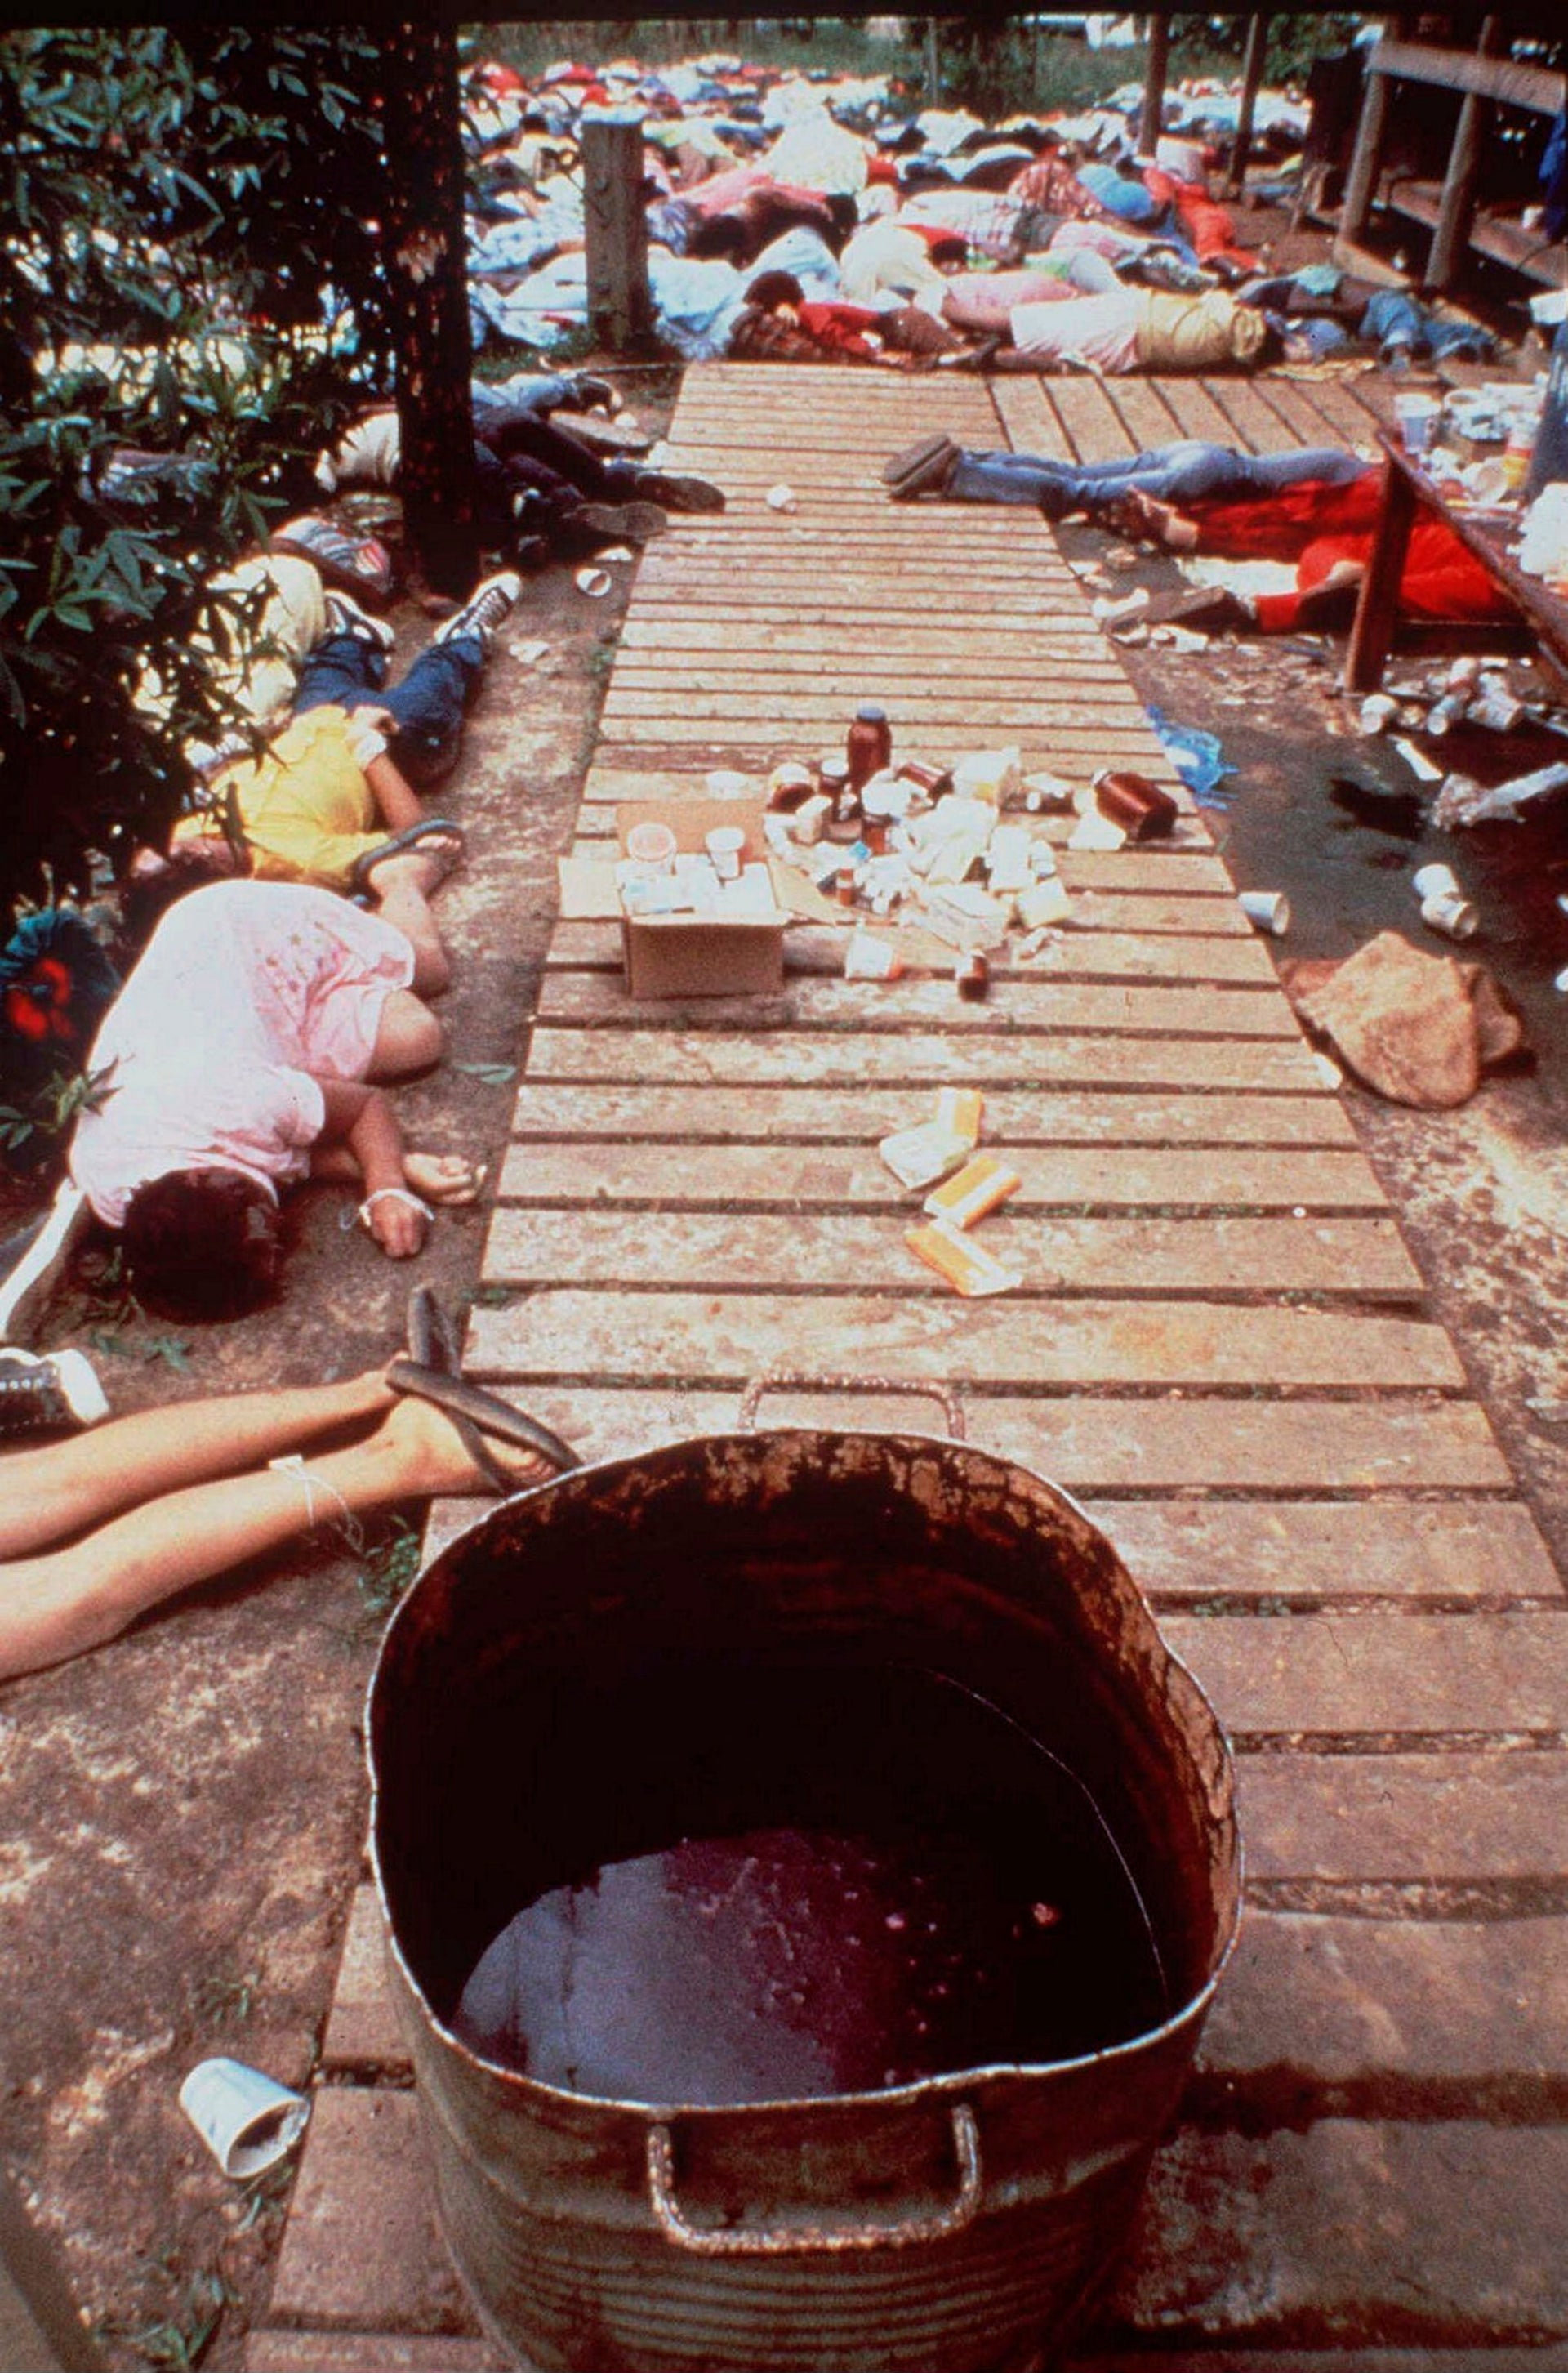 File photo: A vat that contained a drink laced with deadly cyanide sits on a sidewalk at Peoples Temple in Jonestown, Guyana, November 20, 1978.